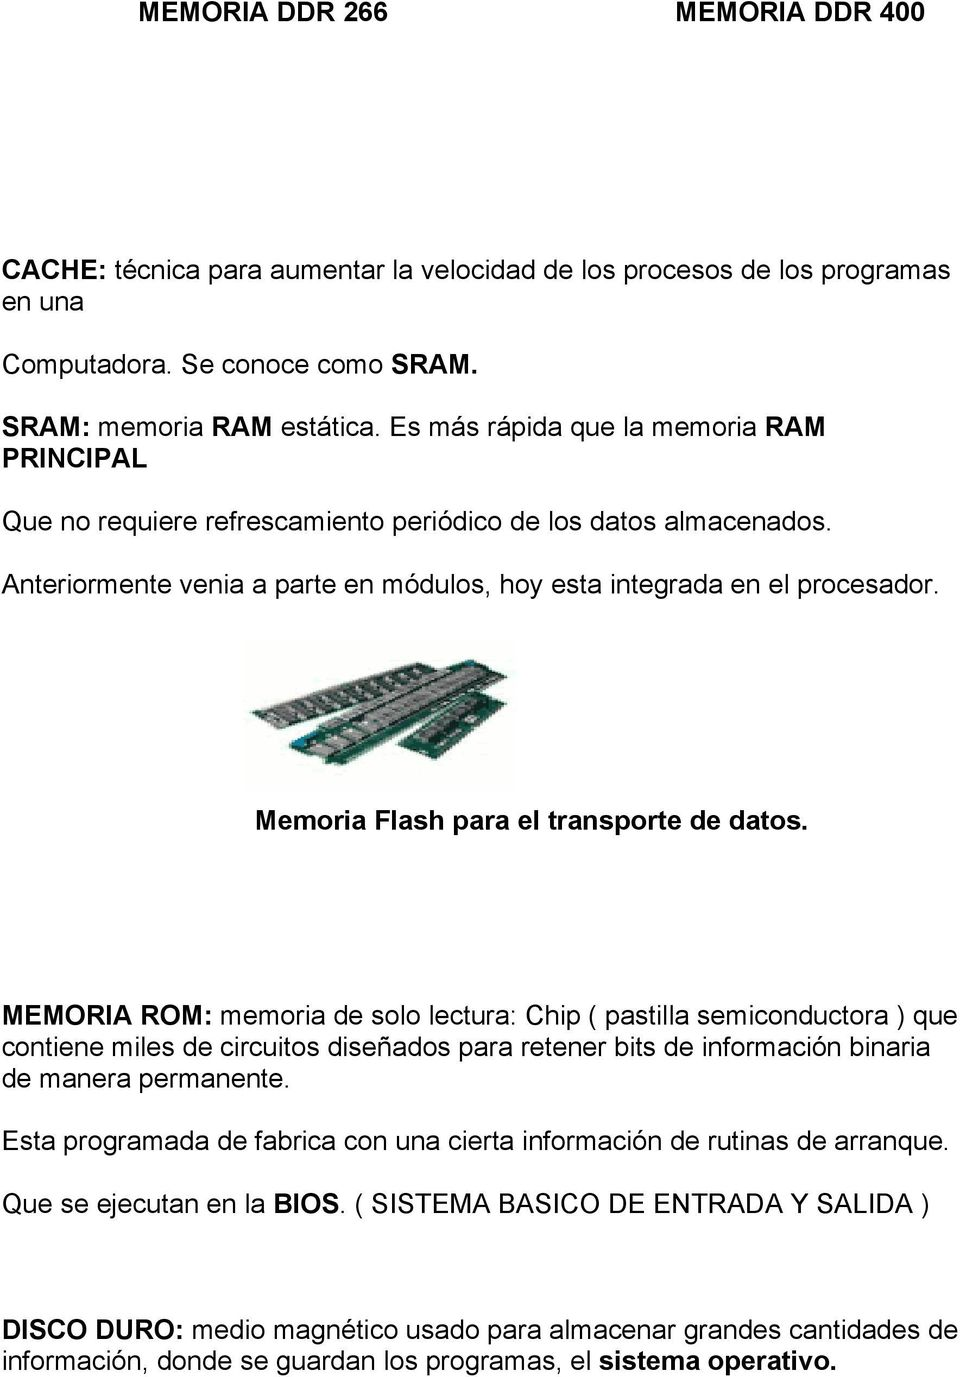 Memoria Flash para el transporte de datos.